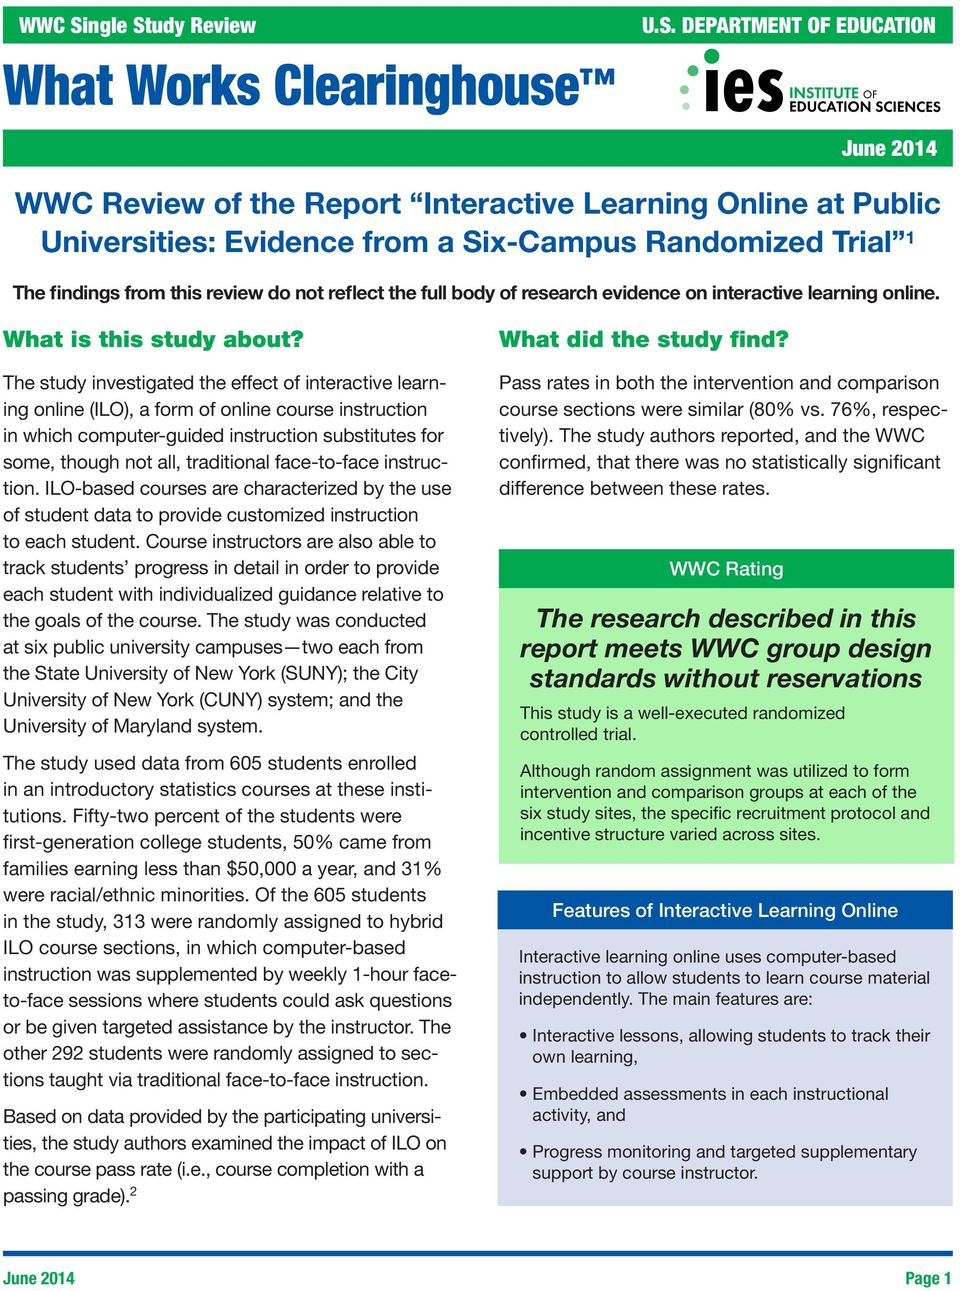 The study investigated the effect of interactive learning online (ILO), a form of online course instruction in which computer-guided instruction substitutes for some, though not all, traditional